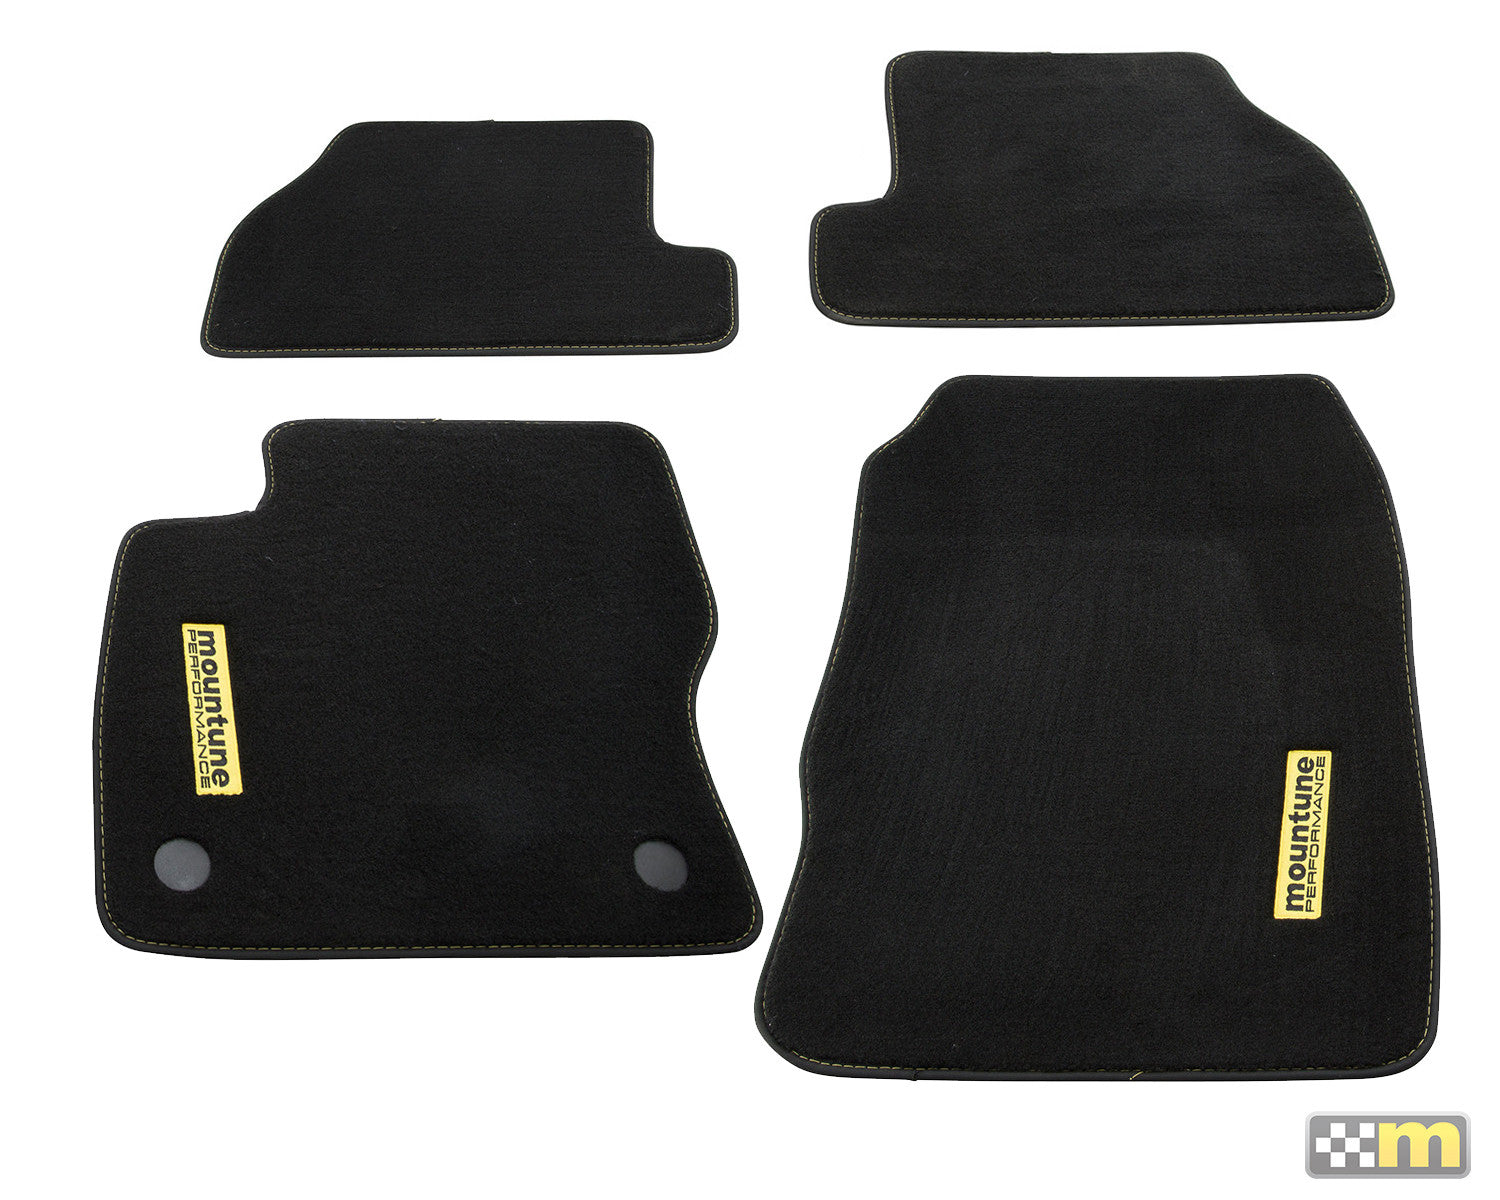 mountune LUX Floor Mats - RS - mountune® - 1